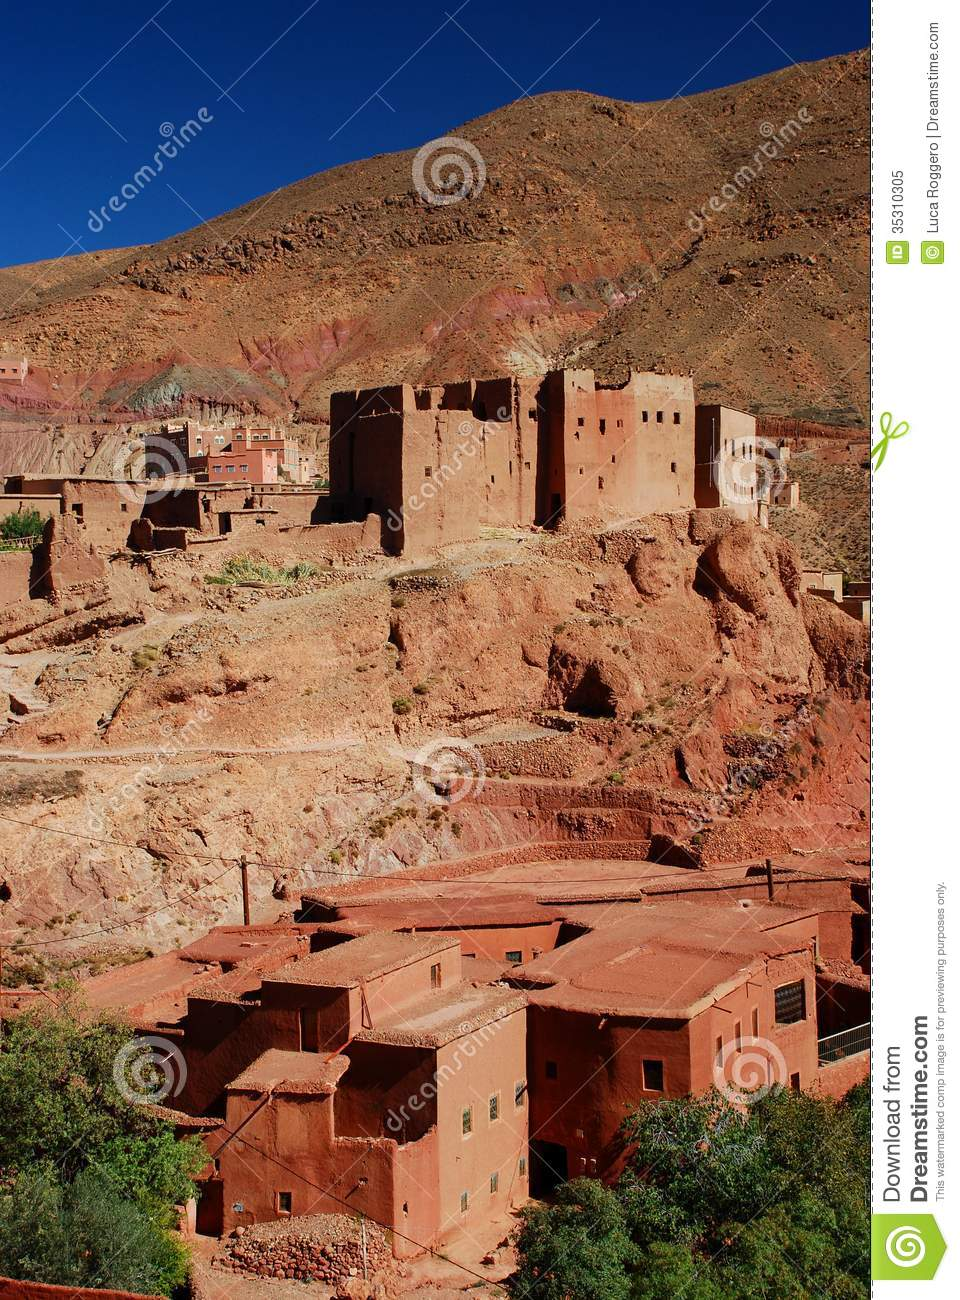 Ancient Kasbahs In The Dades Gorge by Douglas Pearson